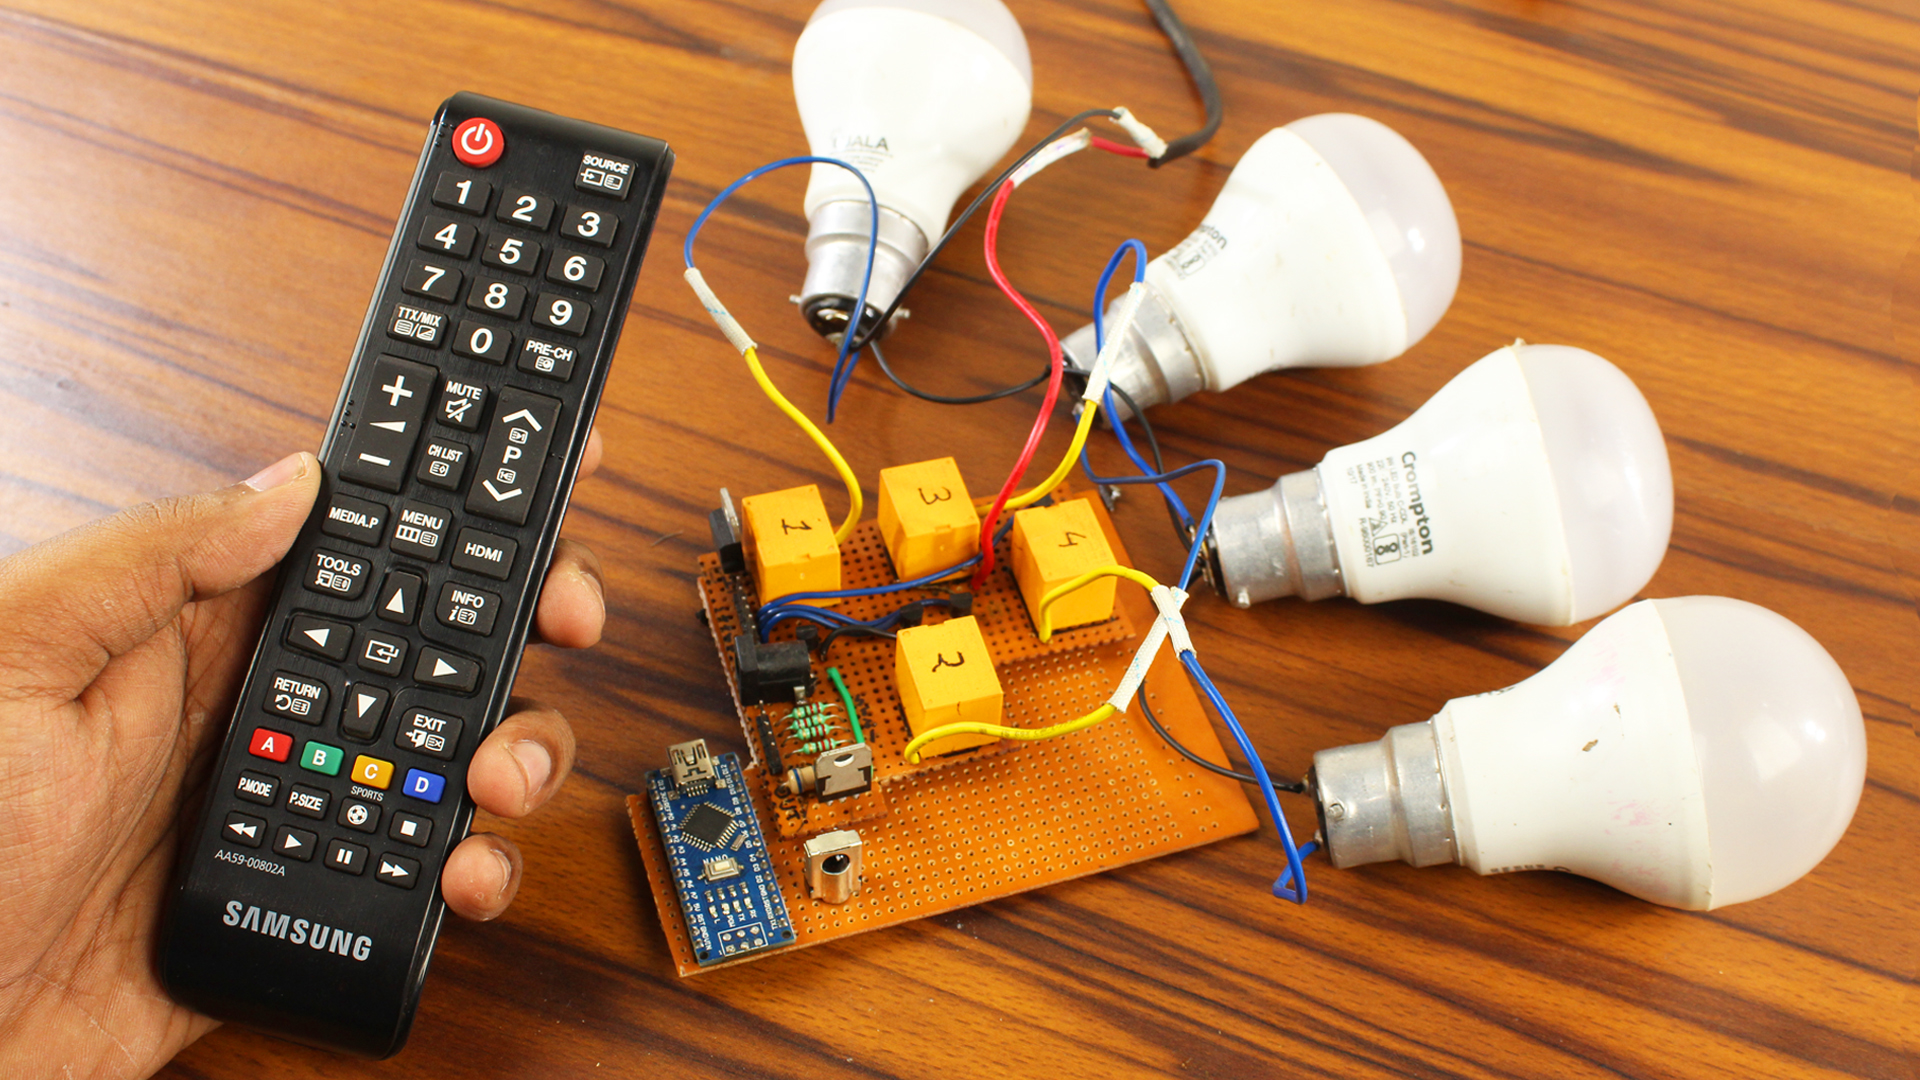 Arduino Remote Control Switch: On/Off Room Light With TV Remote